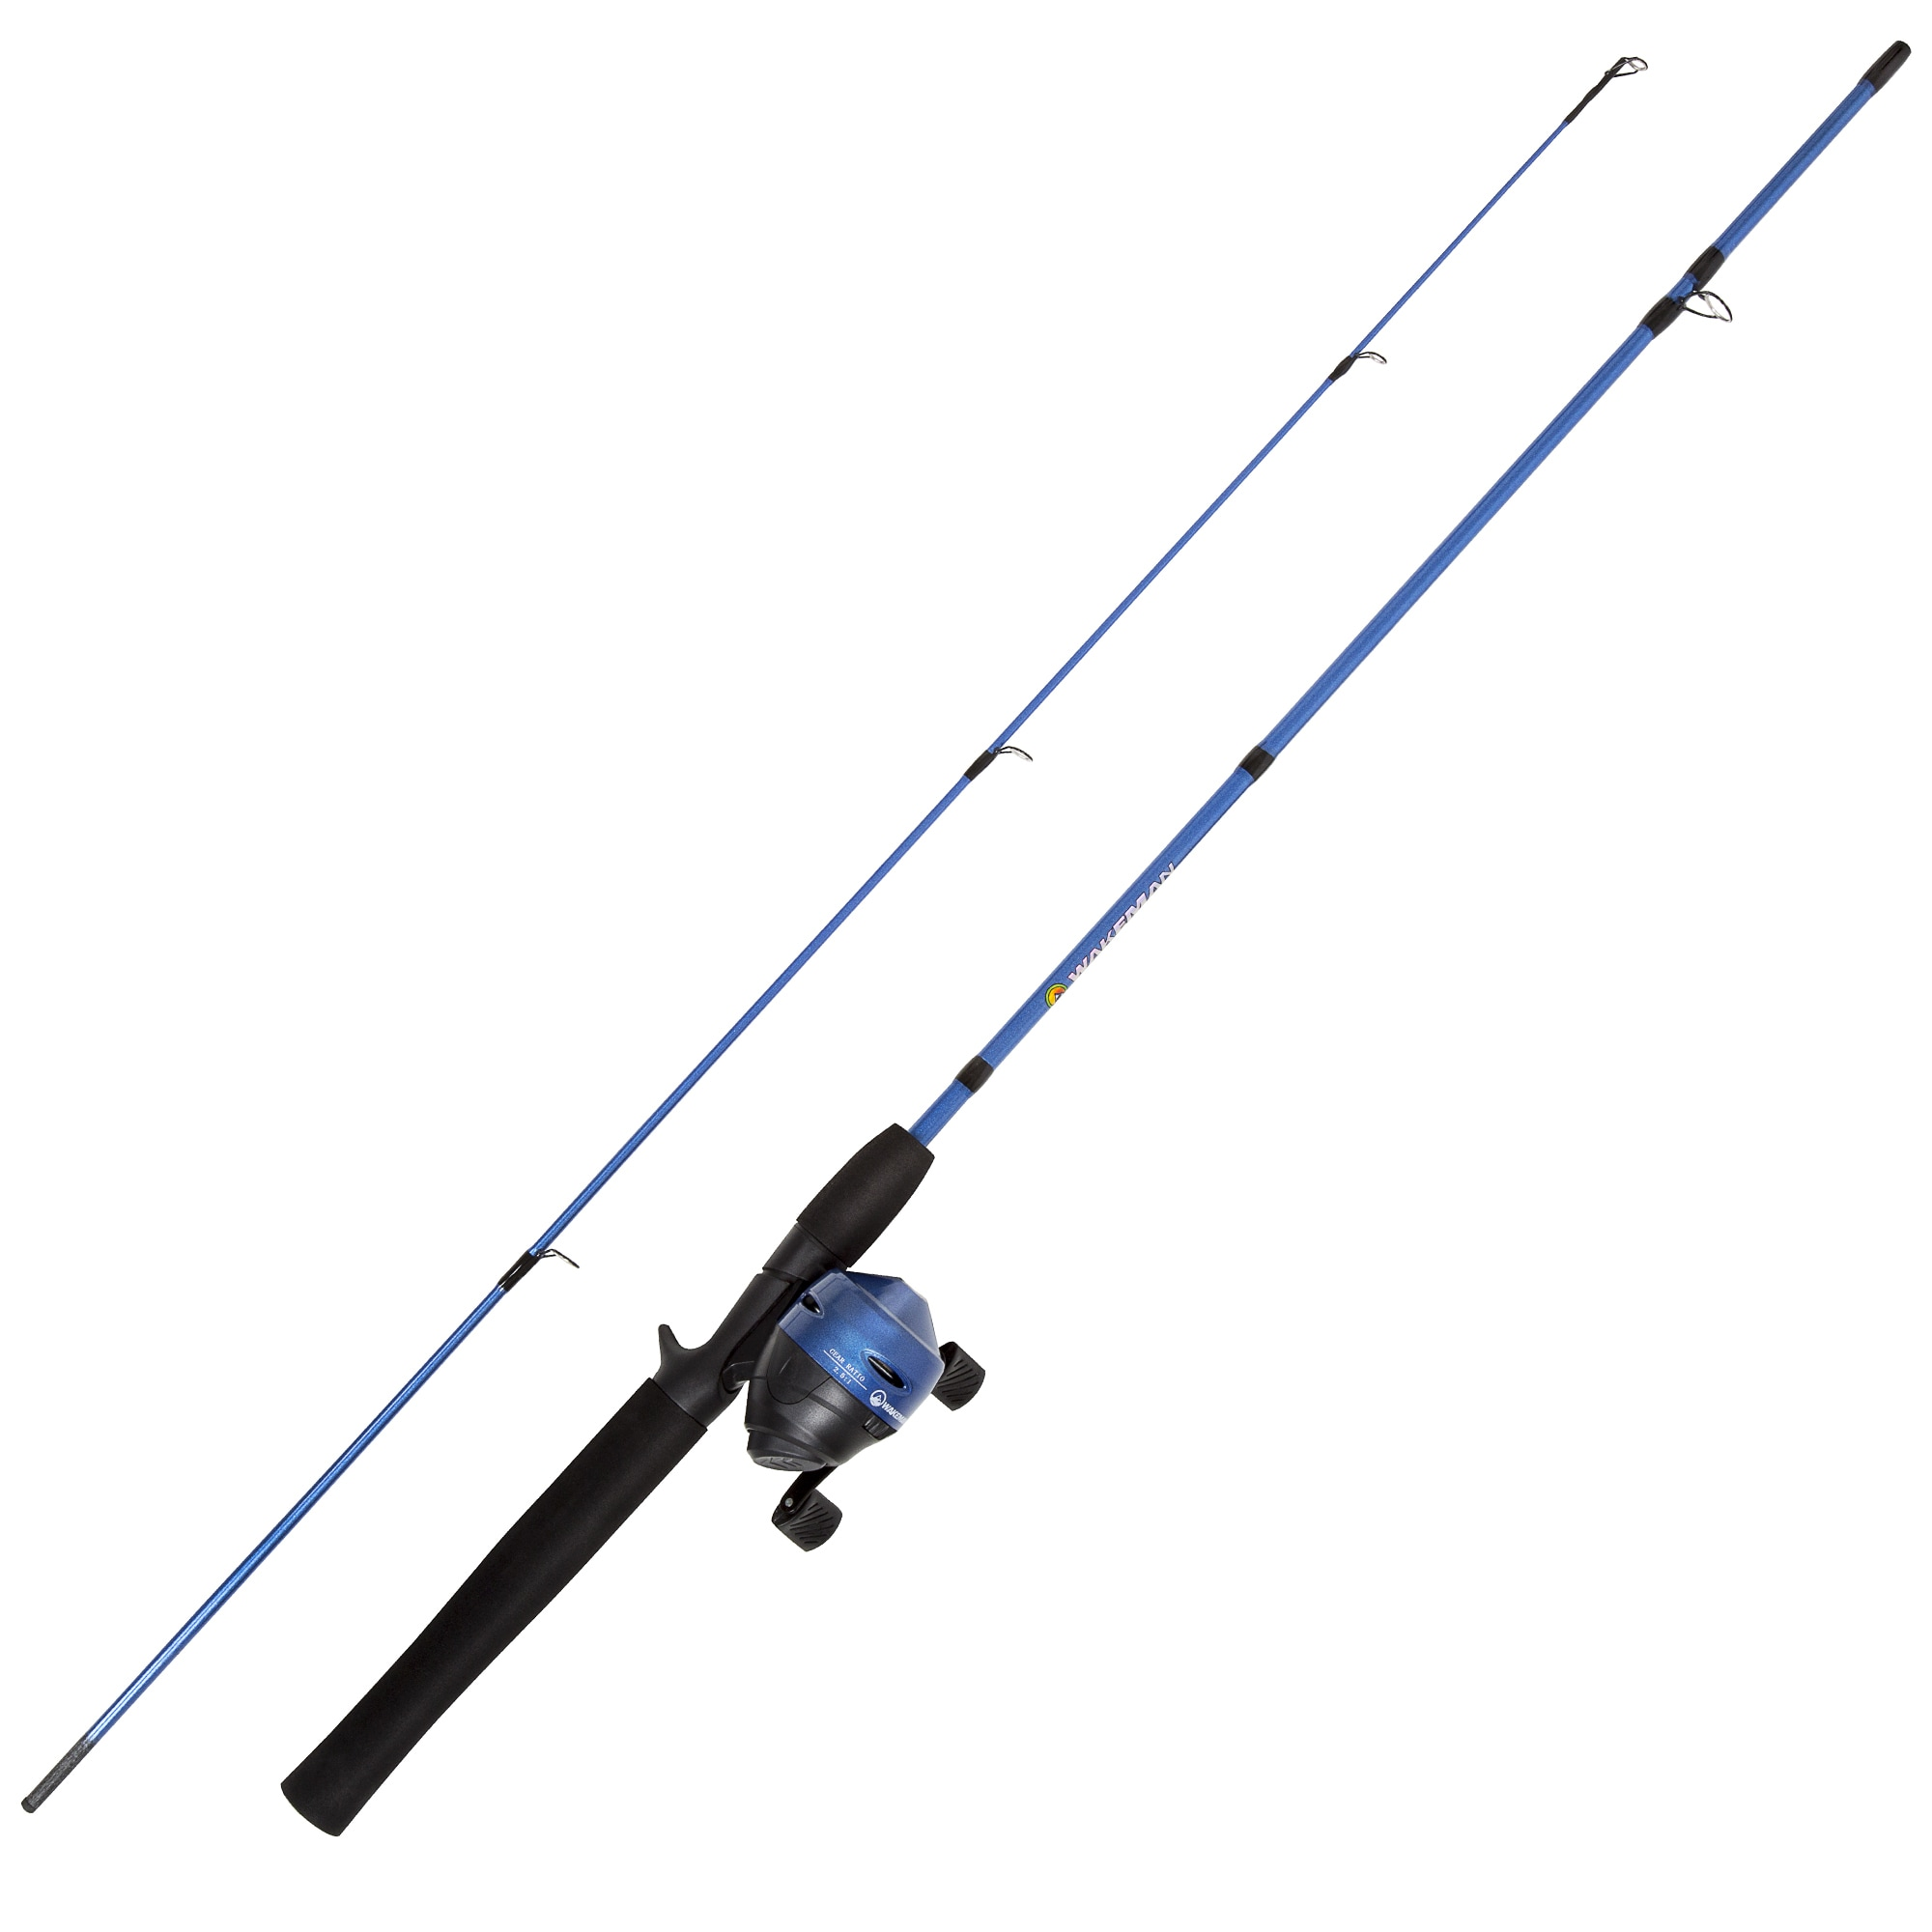 Wakeman Swarm Series Spincast Rod and Reel Combo (Blue Metallic)